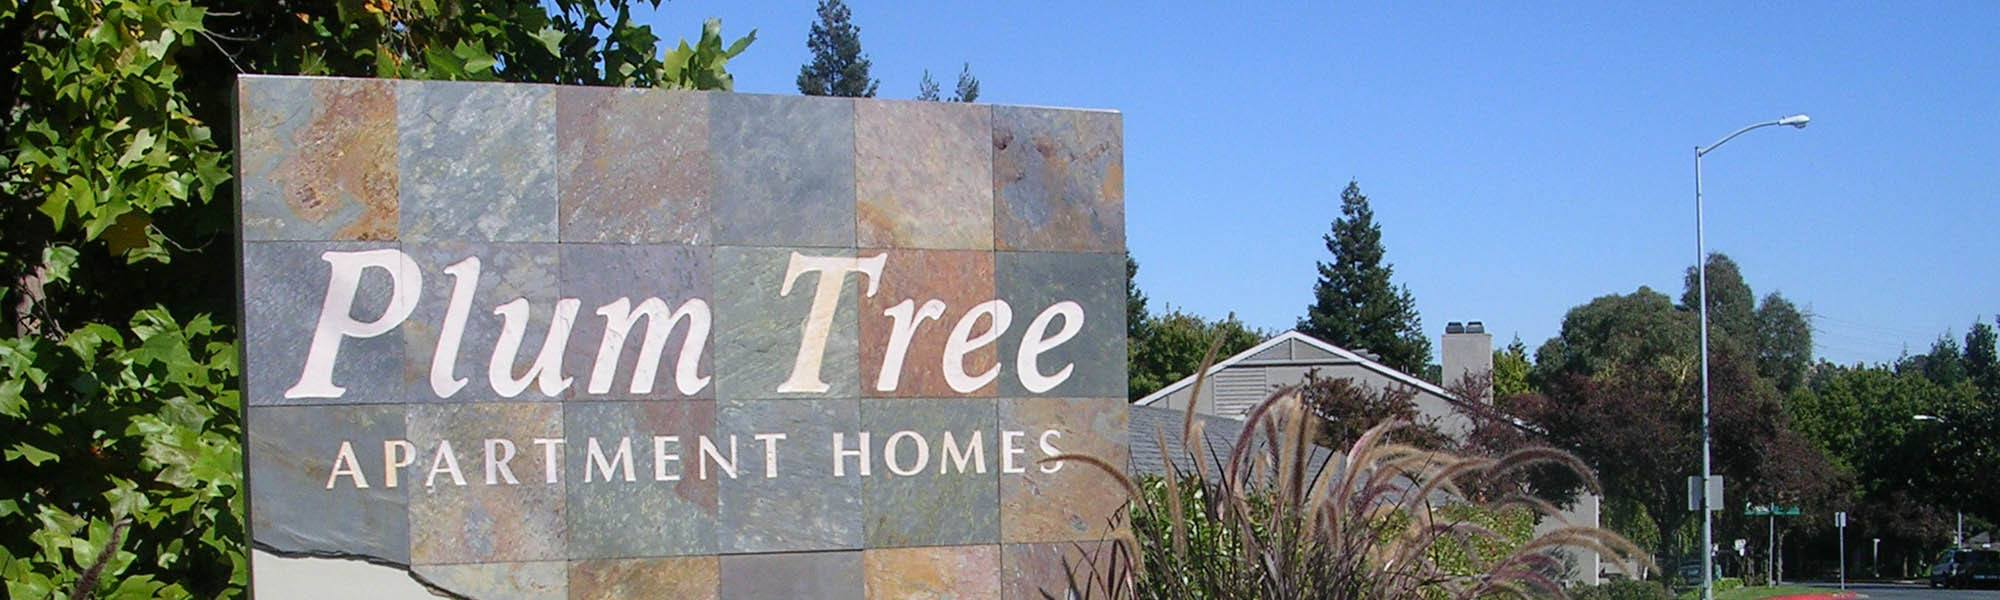 Plum Tree Apartment Homes is pet friendly. Read our pet policy here.